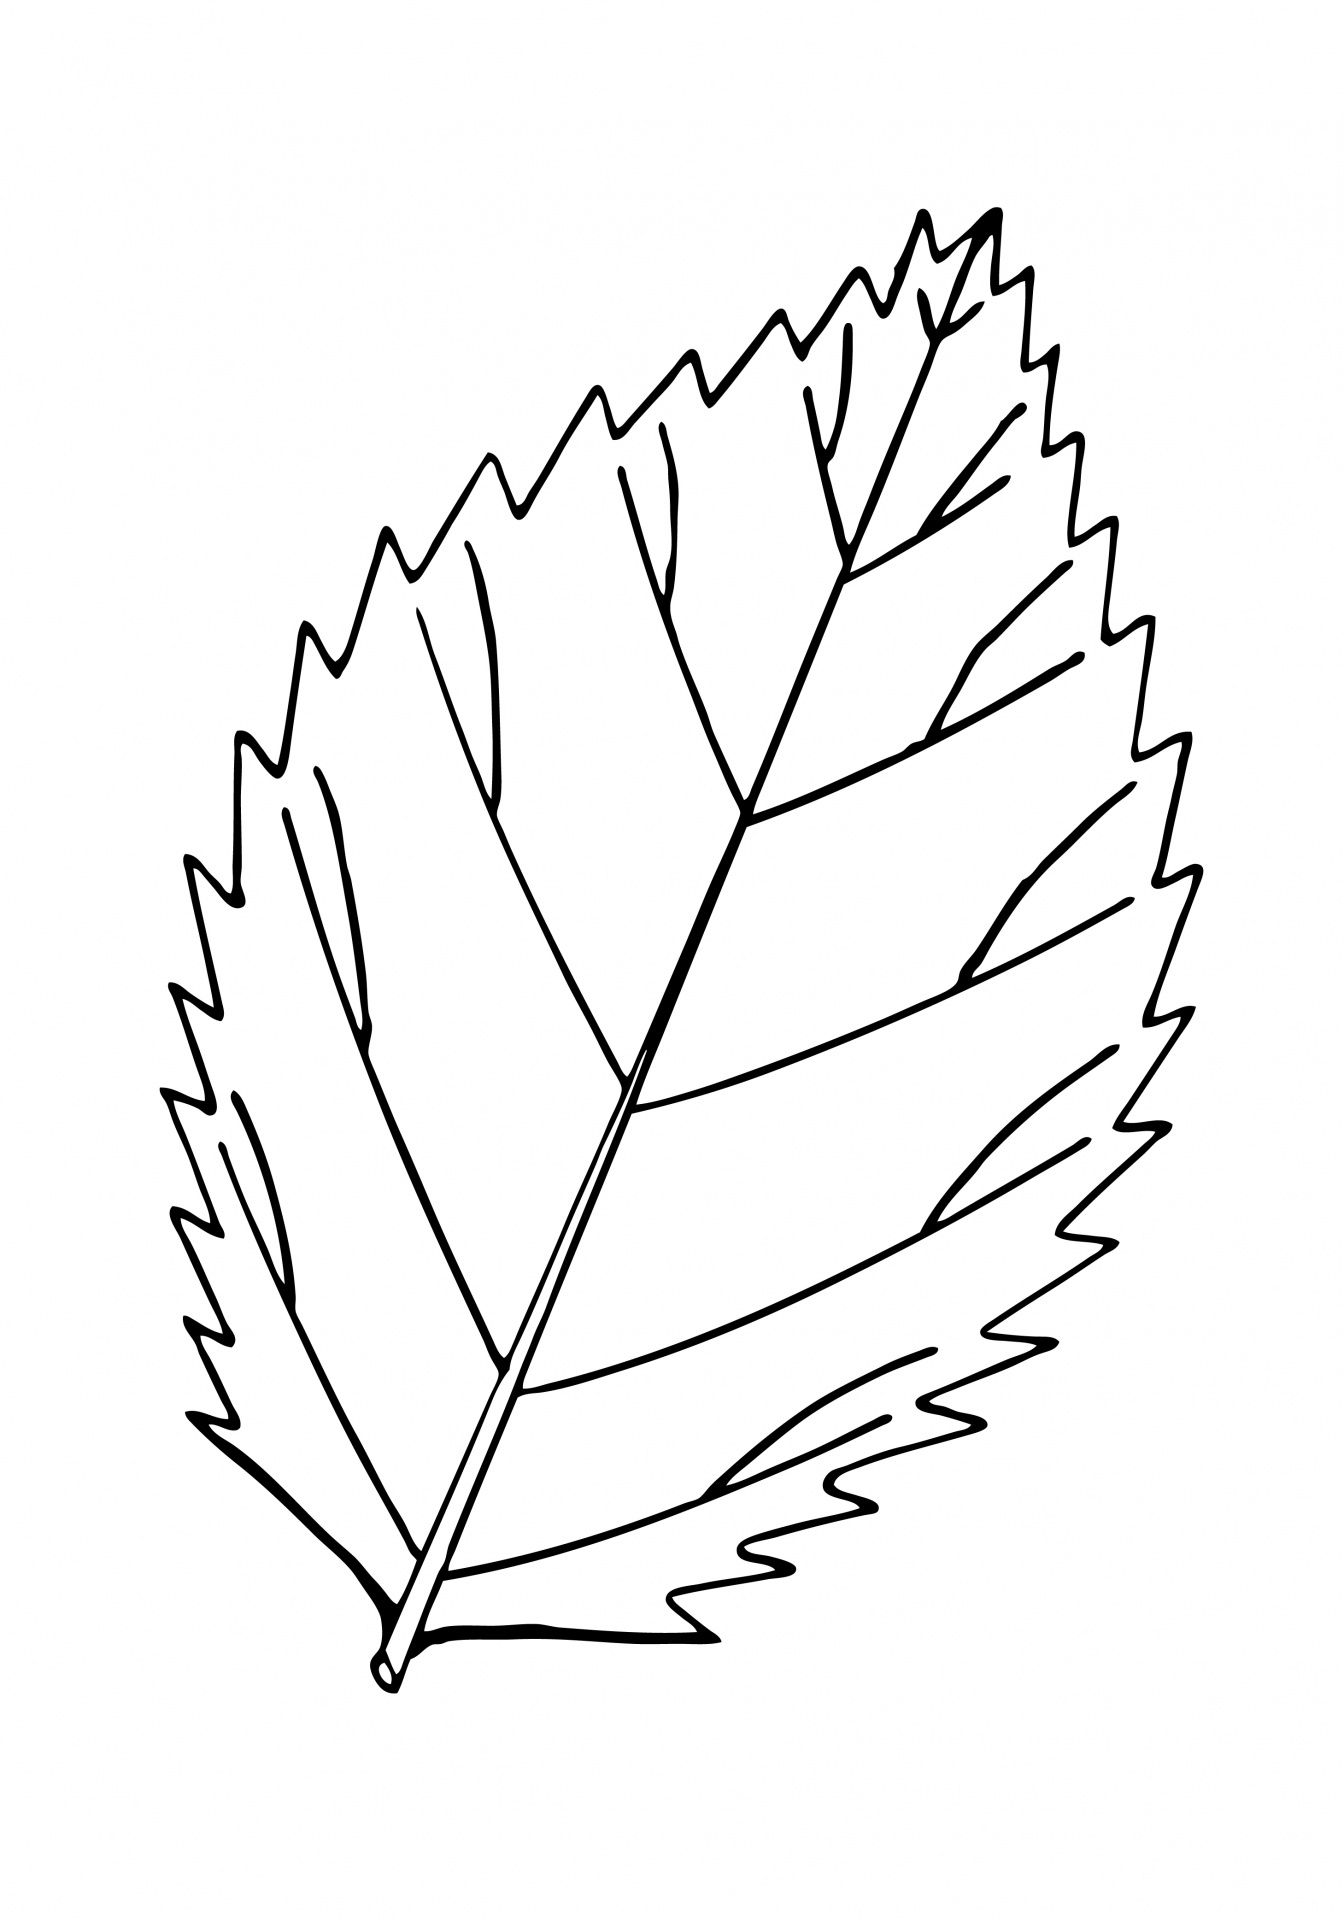 Leaf Outline Illustration Clipart Free Stock Photo